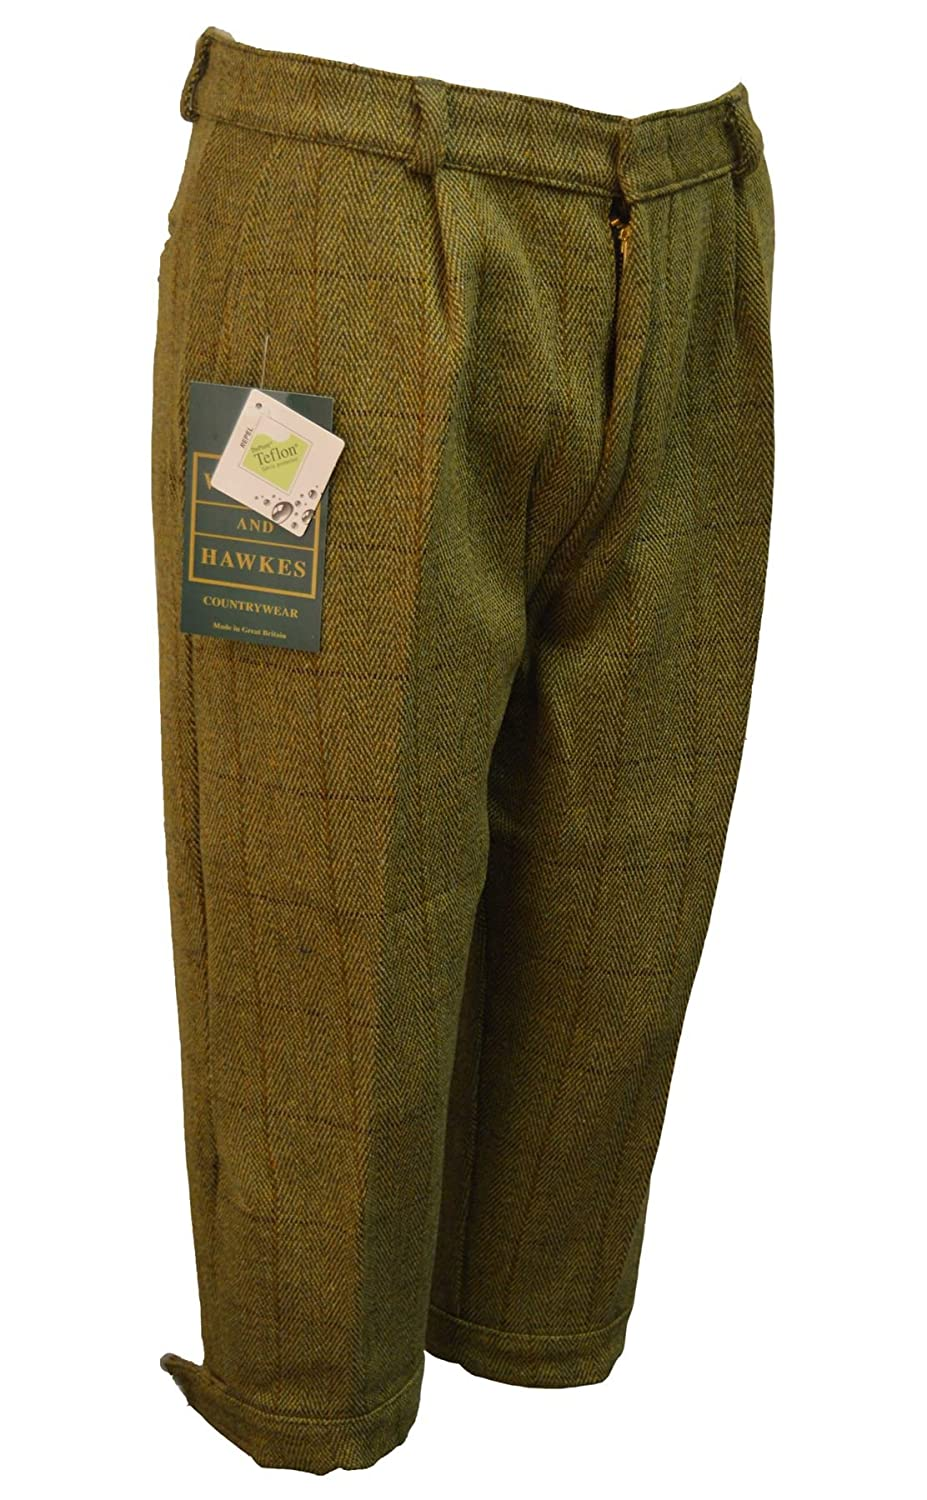 1920s Style Women's Pants, Trousers, Knickers, Tuxedo Walker & Hawkes - Mens Derby Tweed Shooting Plus Fours LONG Breeks Trousers - Light Sage - 32-42 $76.99 AT vintagedancer.com